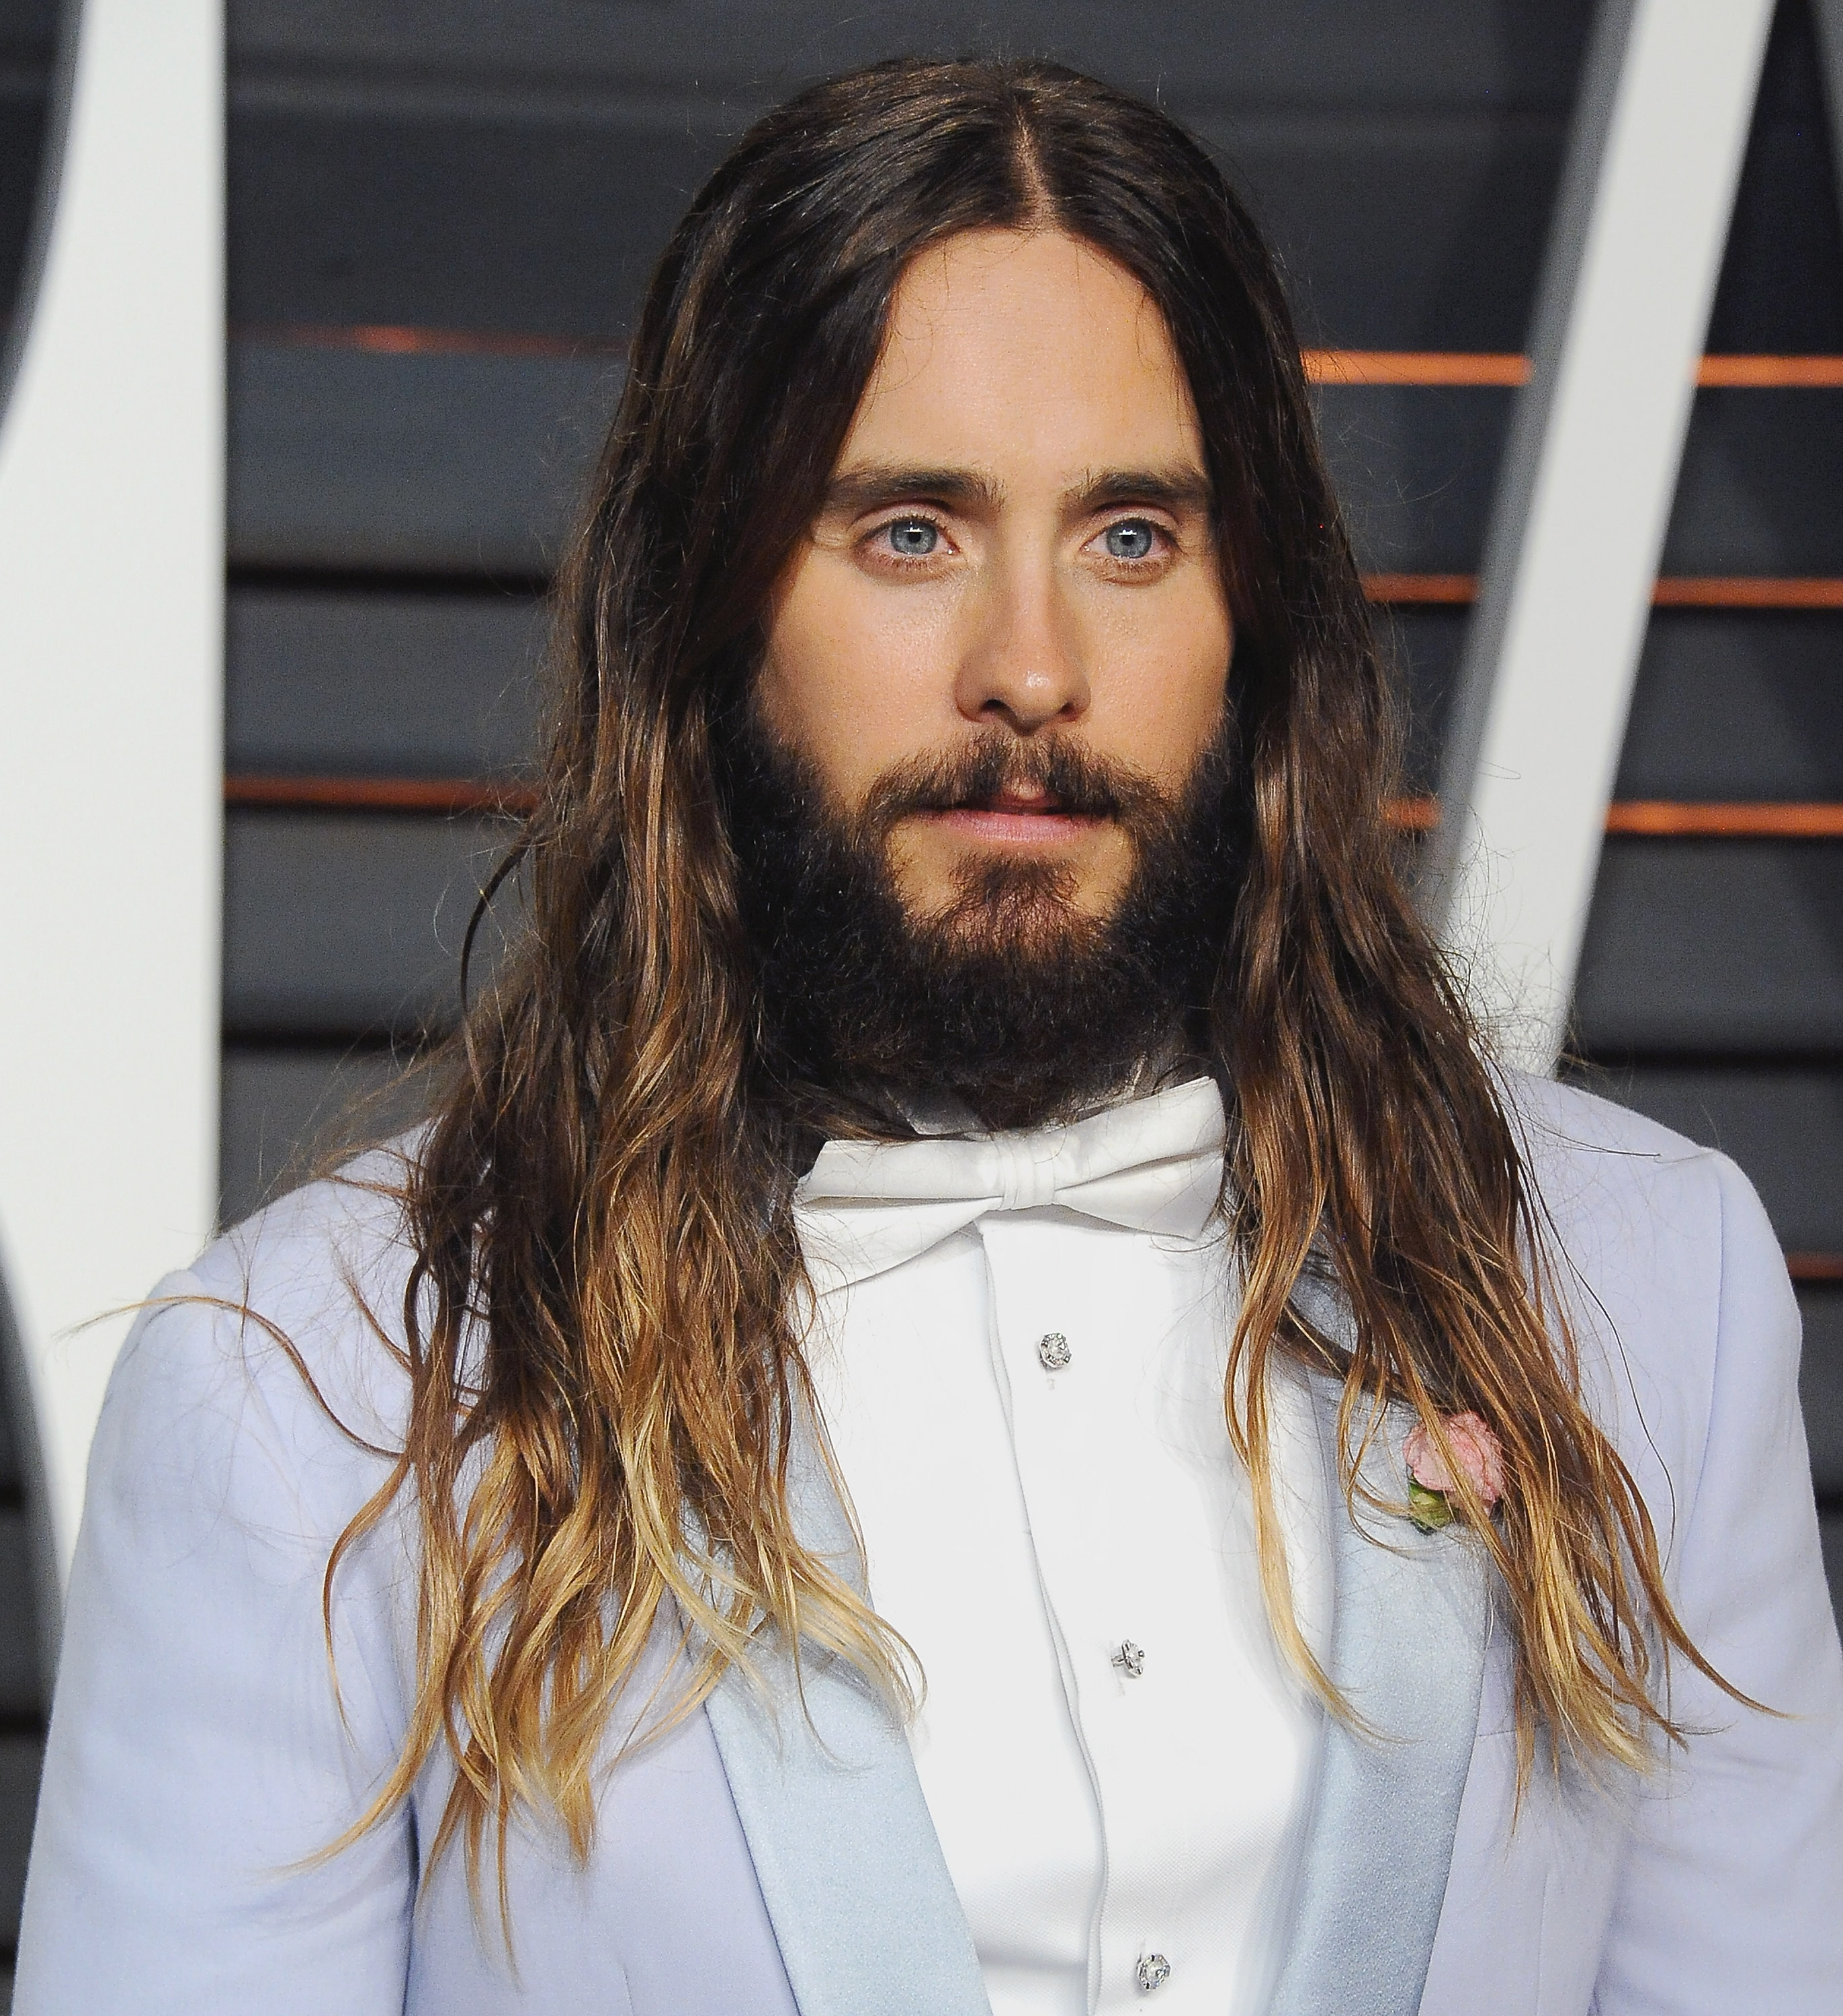 Jared Leto arrives at the 2015 Vanity Fair Oscar Party Hosted By Graydon Carter in Beverly Hills, Calif. on Feb. 22, 2015.